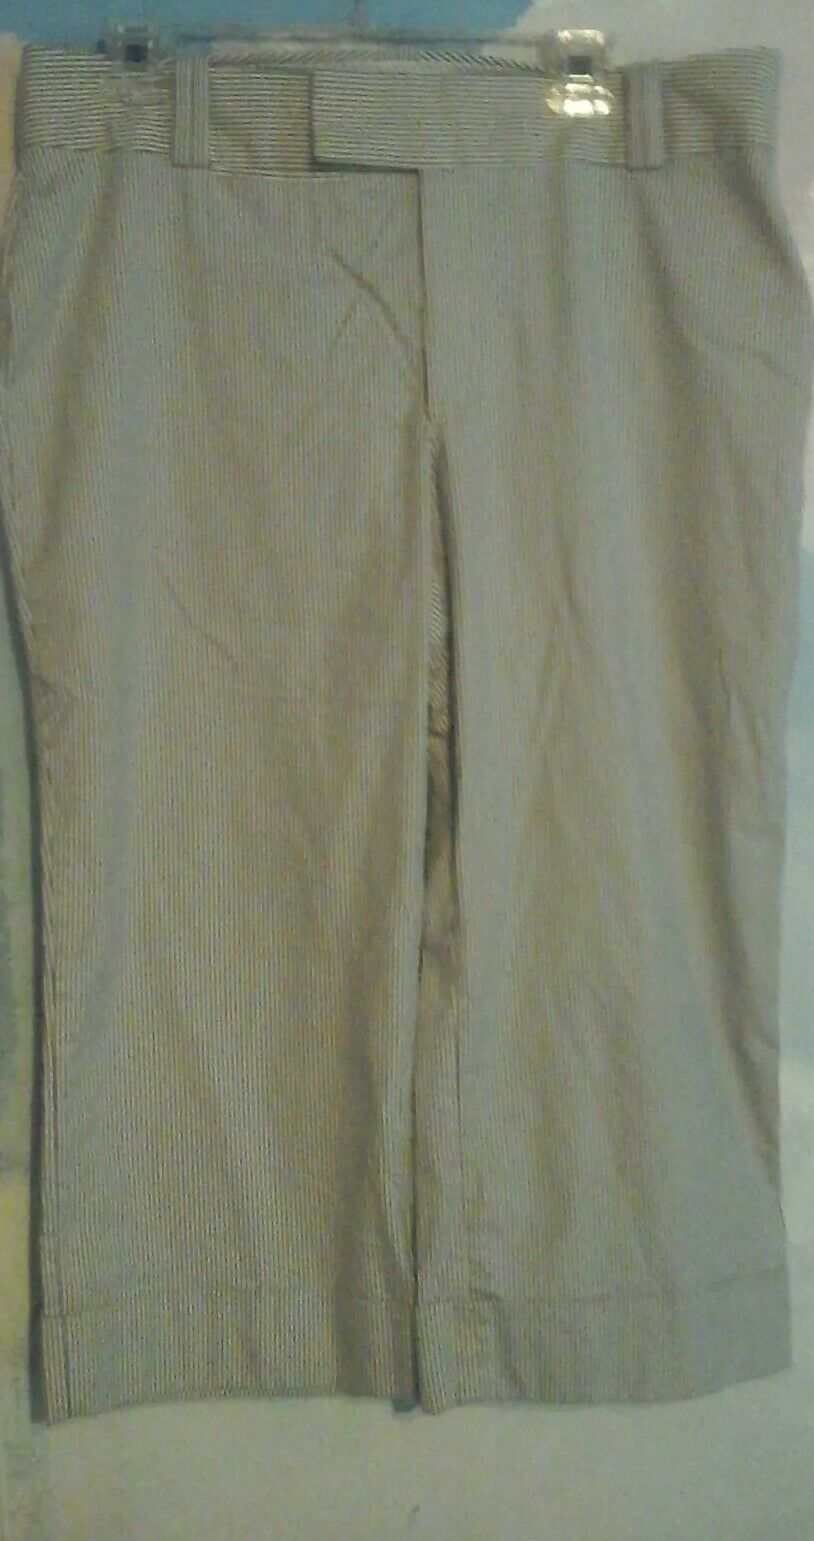 Banana Republic Pants In Stretch Cotton spandex In a bluee white Small Stripe, 14